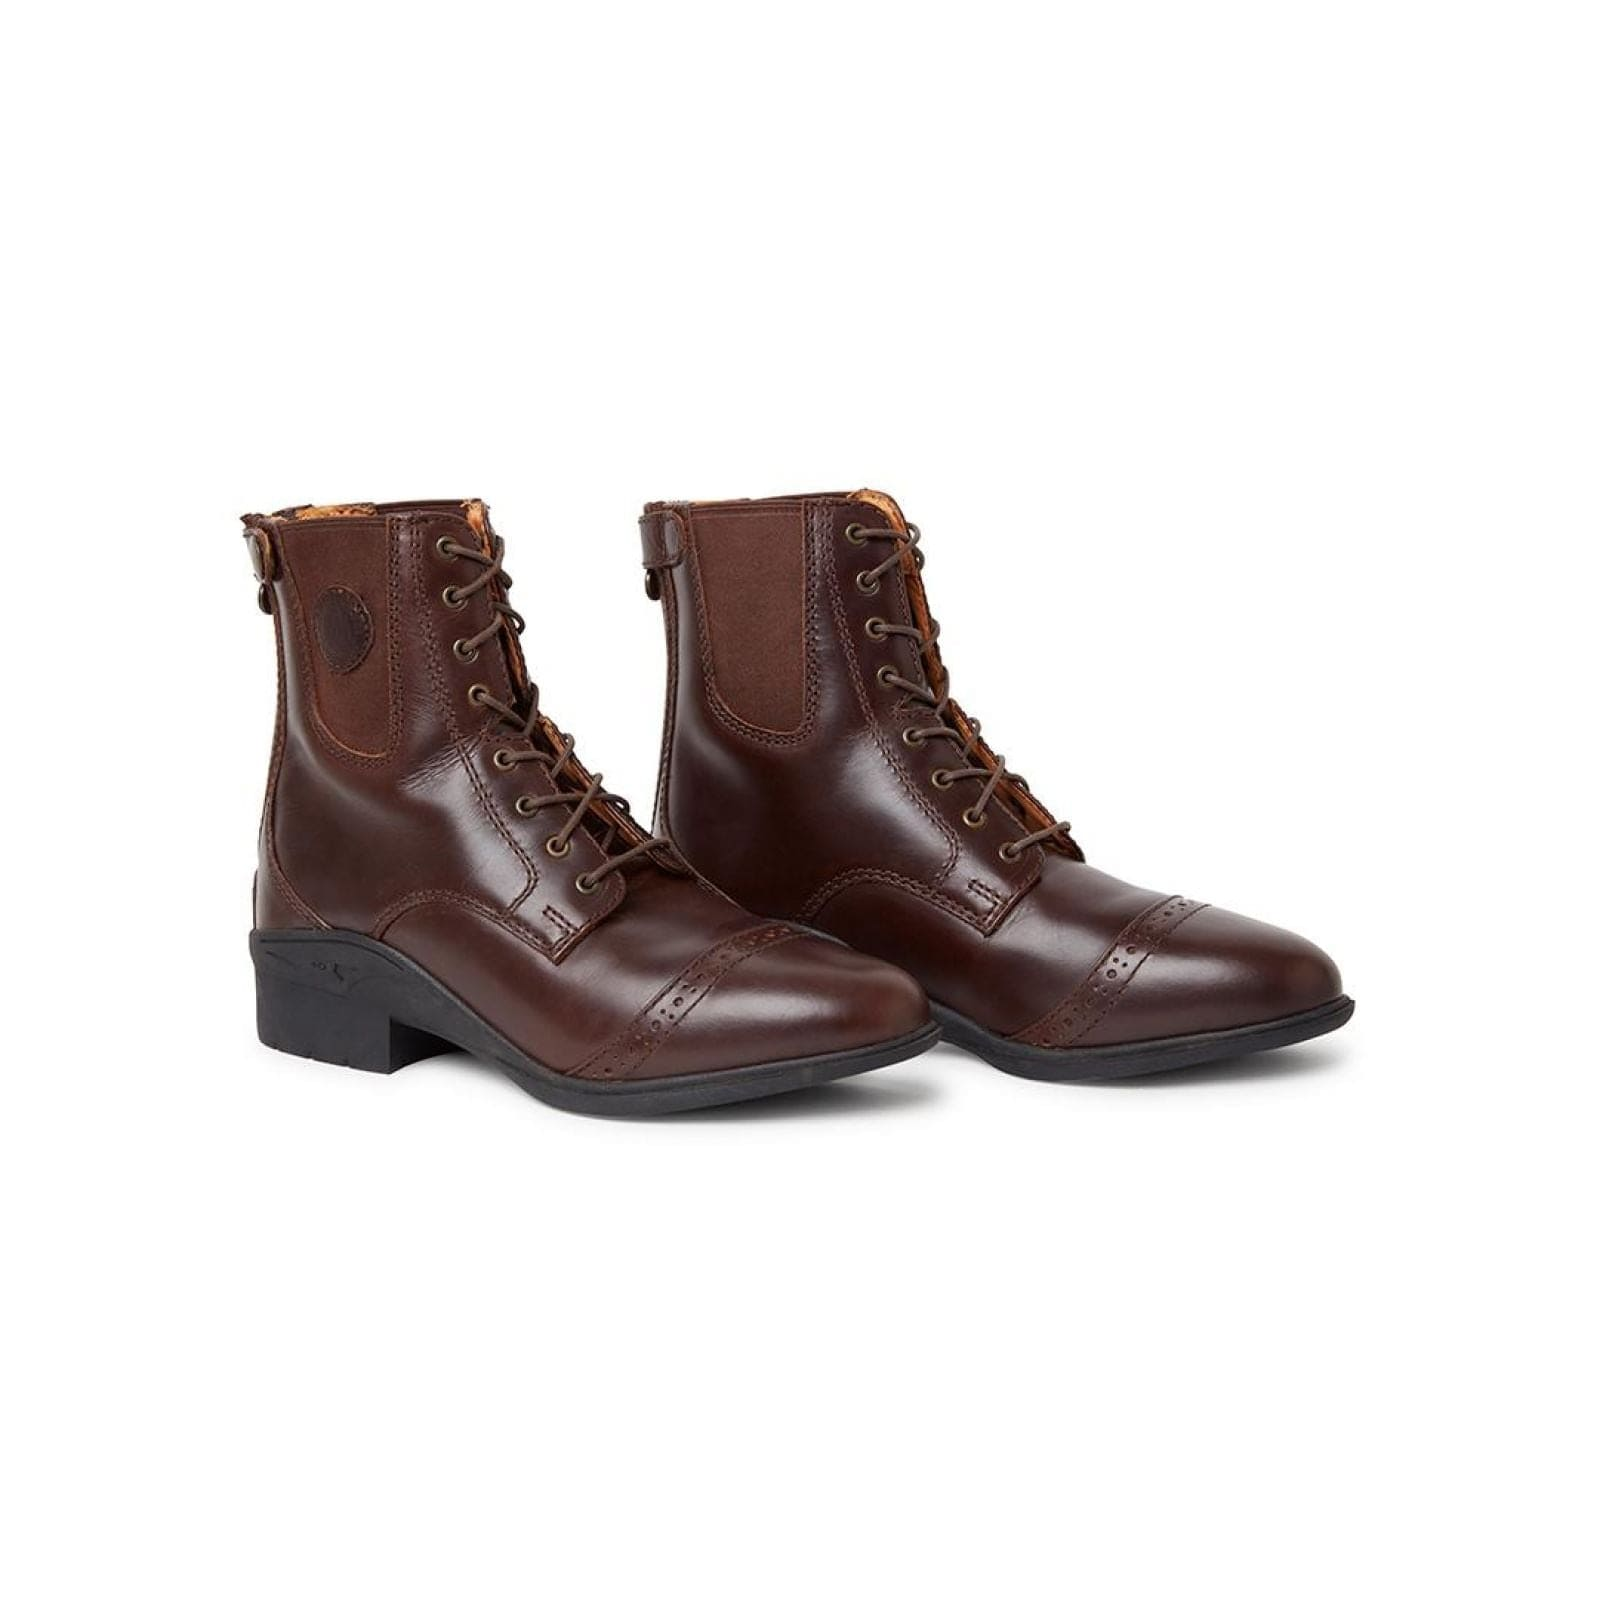 Mountain Horse Aurora Back Zip Paddock Boots